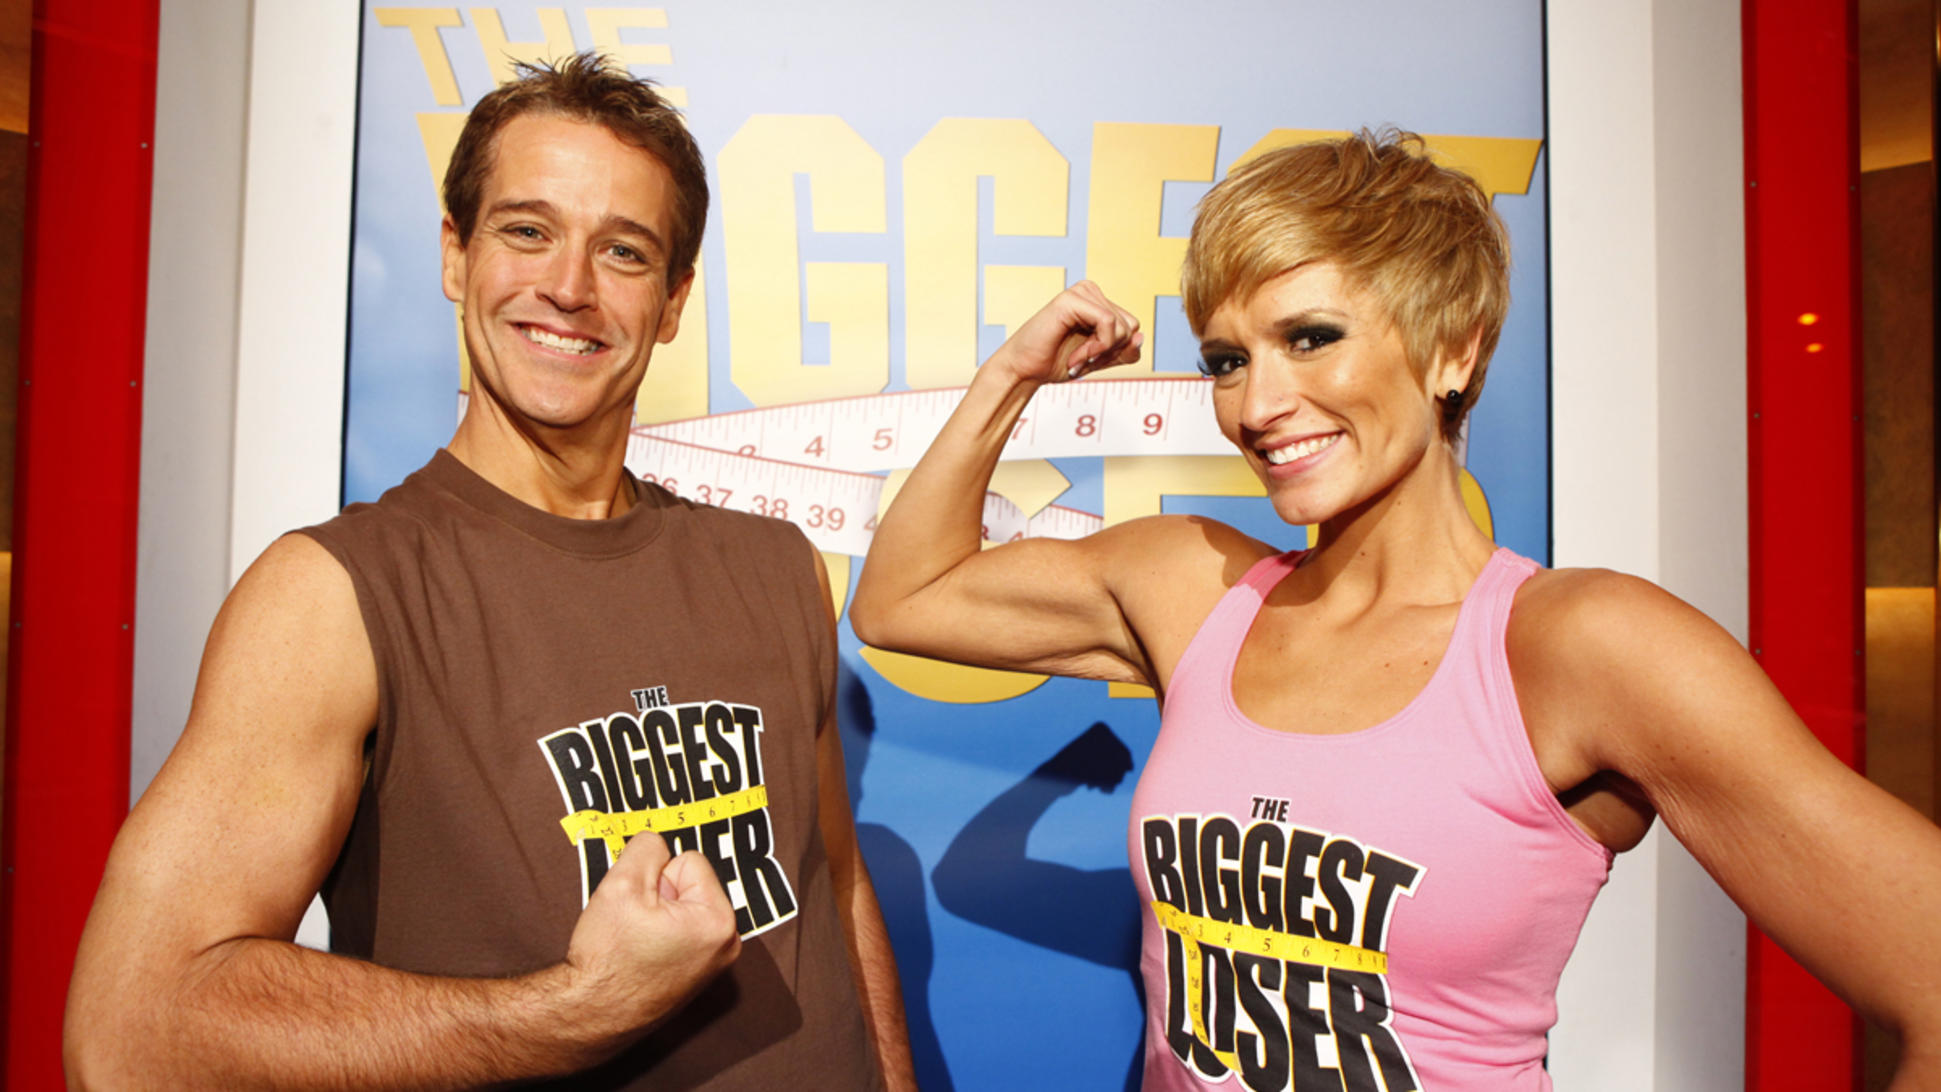 The Biggest Loser show is coming back with promises of improvement